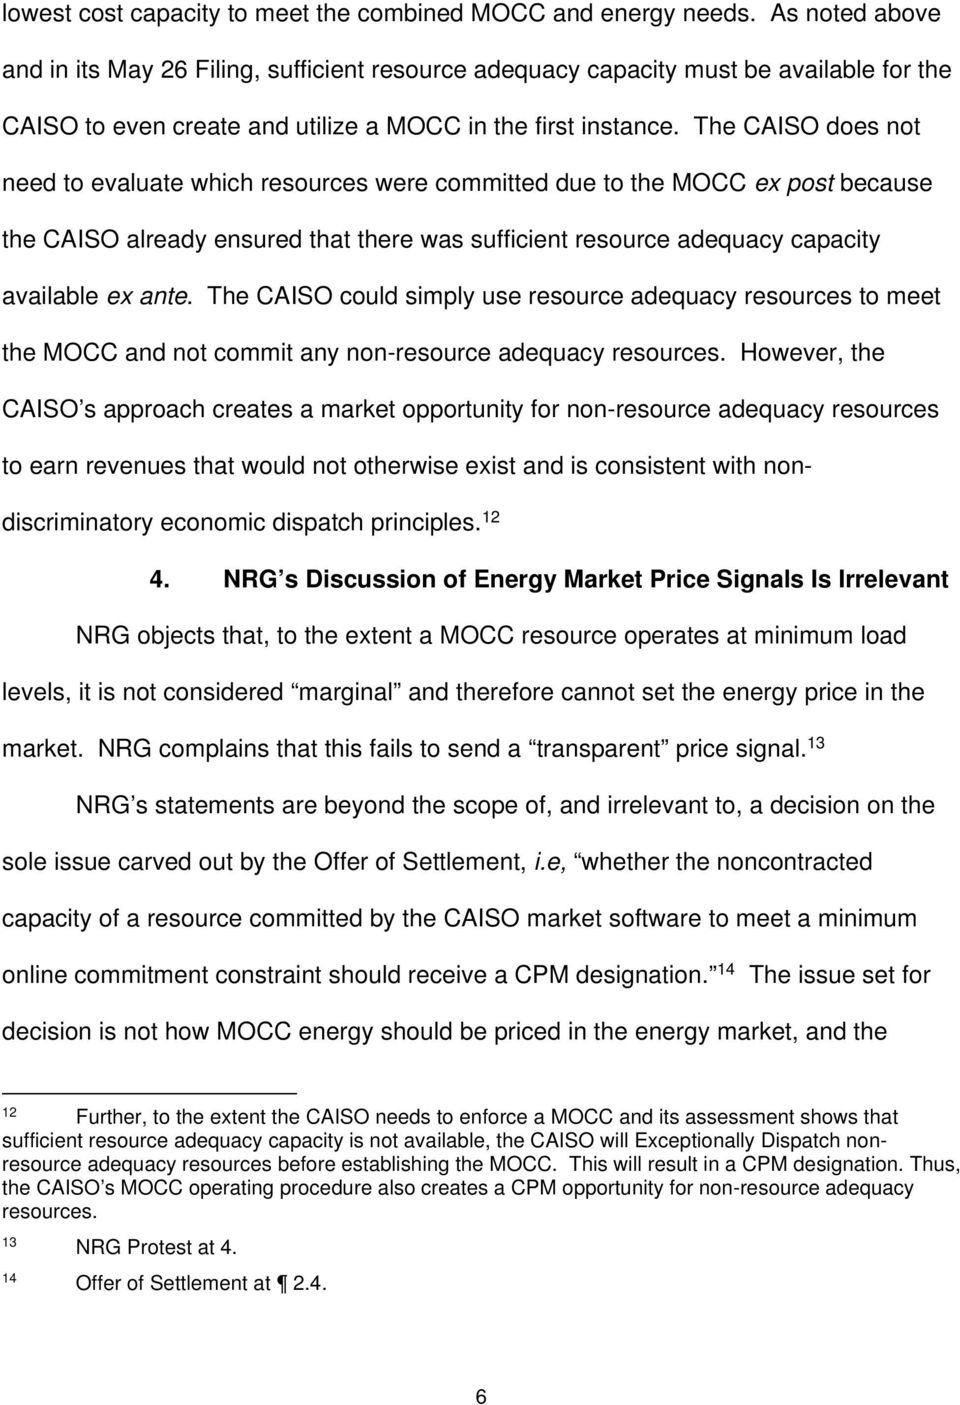 The CAISO does not need to evaluate which resources were committed due to the MOCC ex post because the CAISO already ensured that there was sufficient resource adequacy capacity available ex ante.